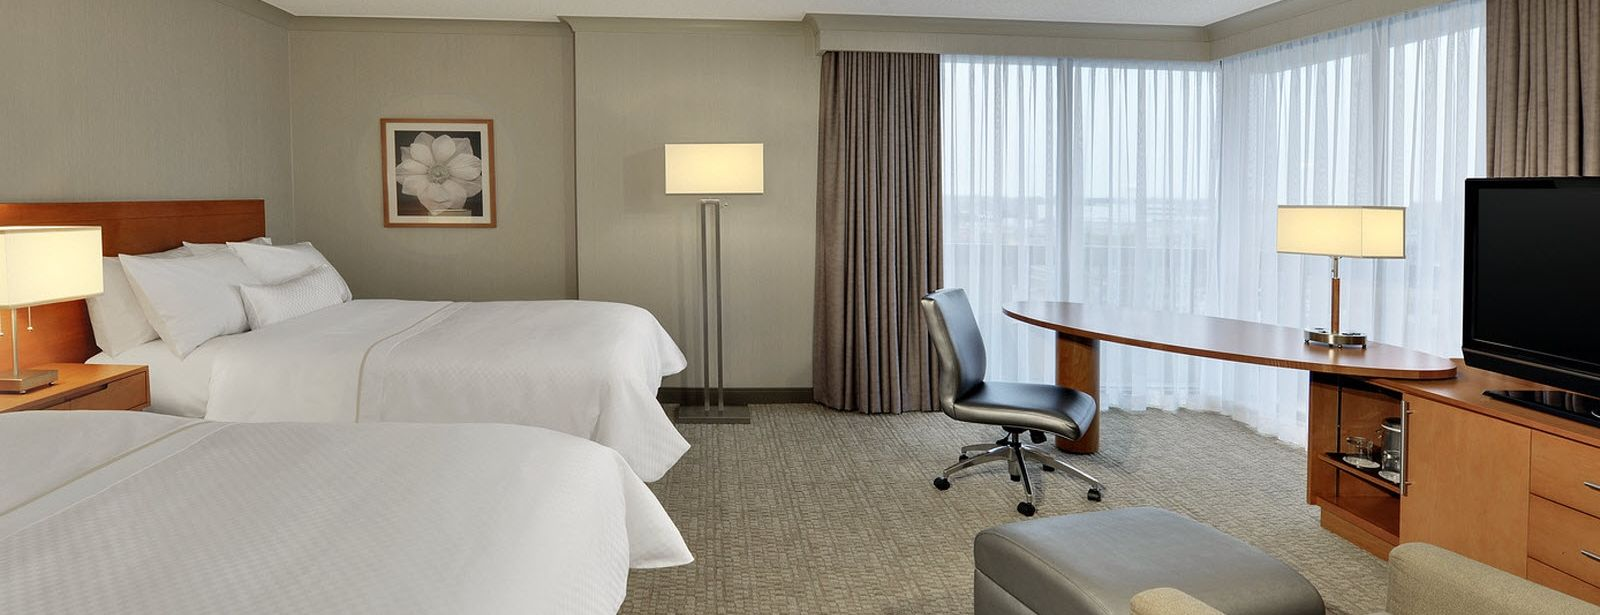 Deluxe Guest Room | The Westin Prince, Toronto